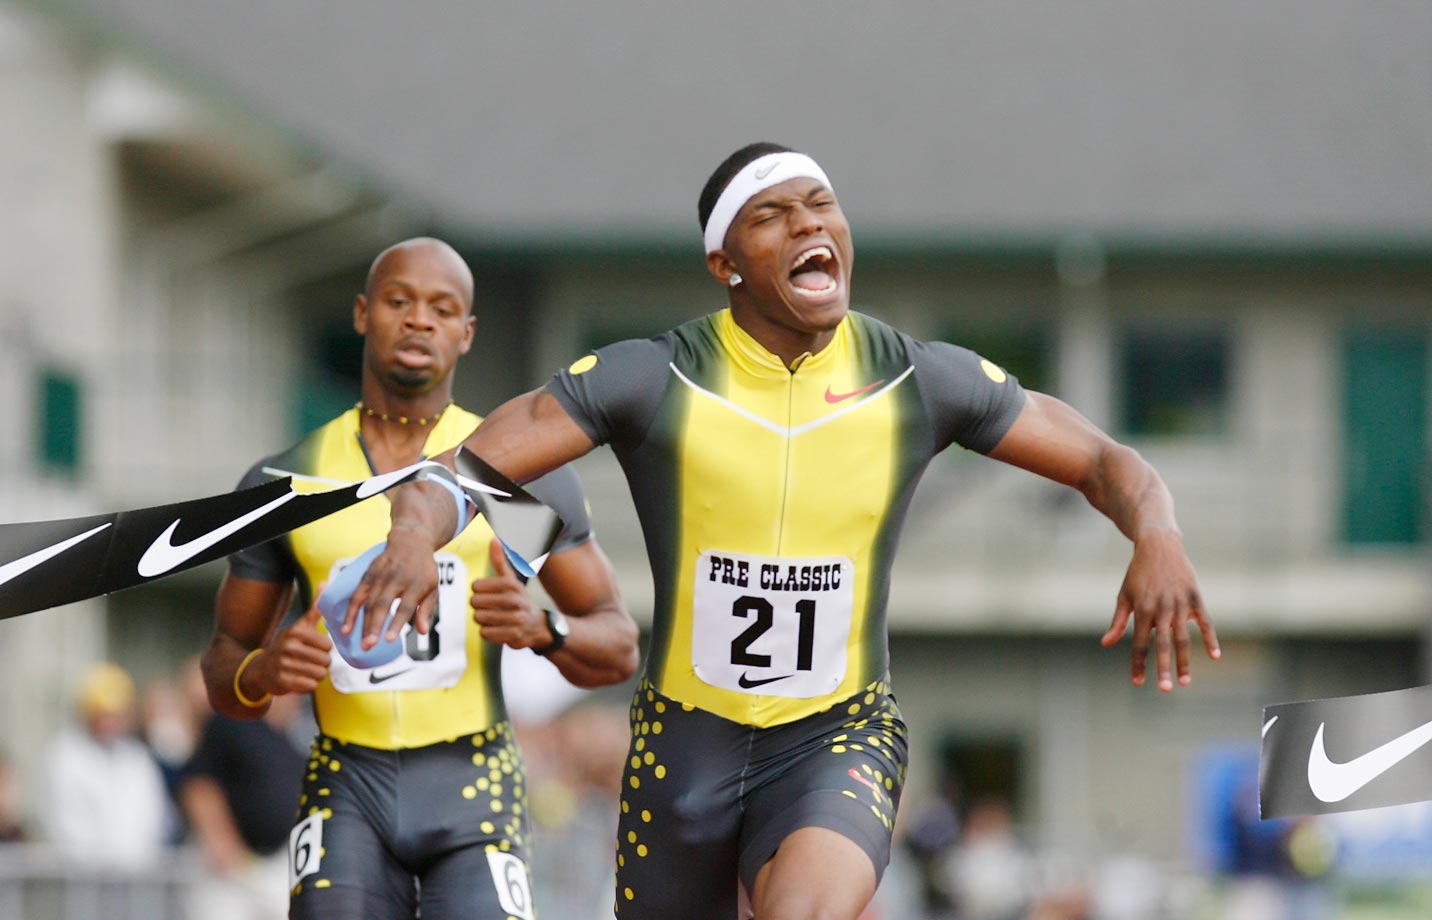 Xavier Carter at the 2007 Prefontaine Classic.